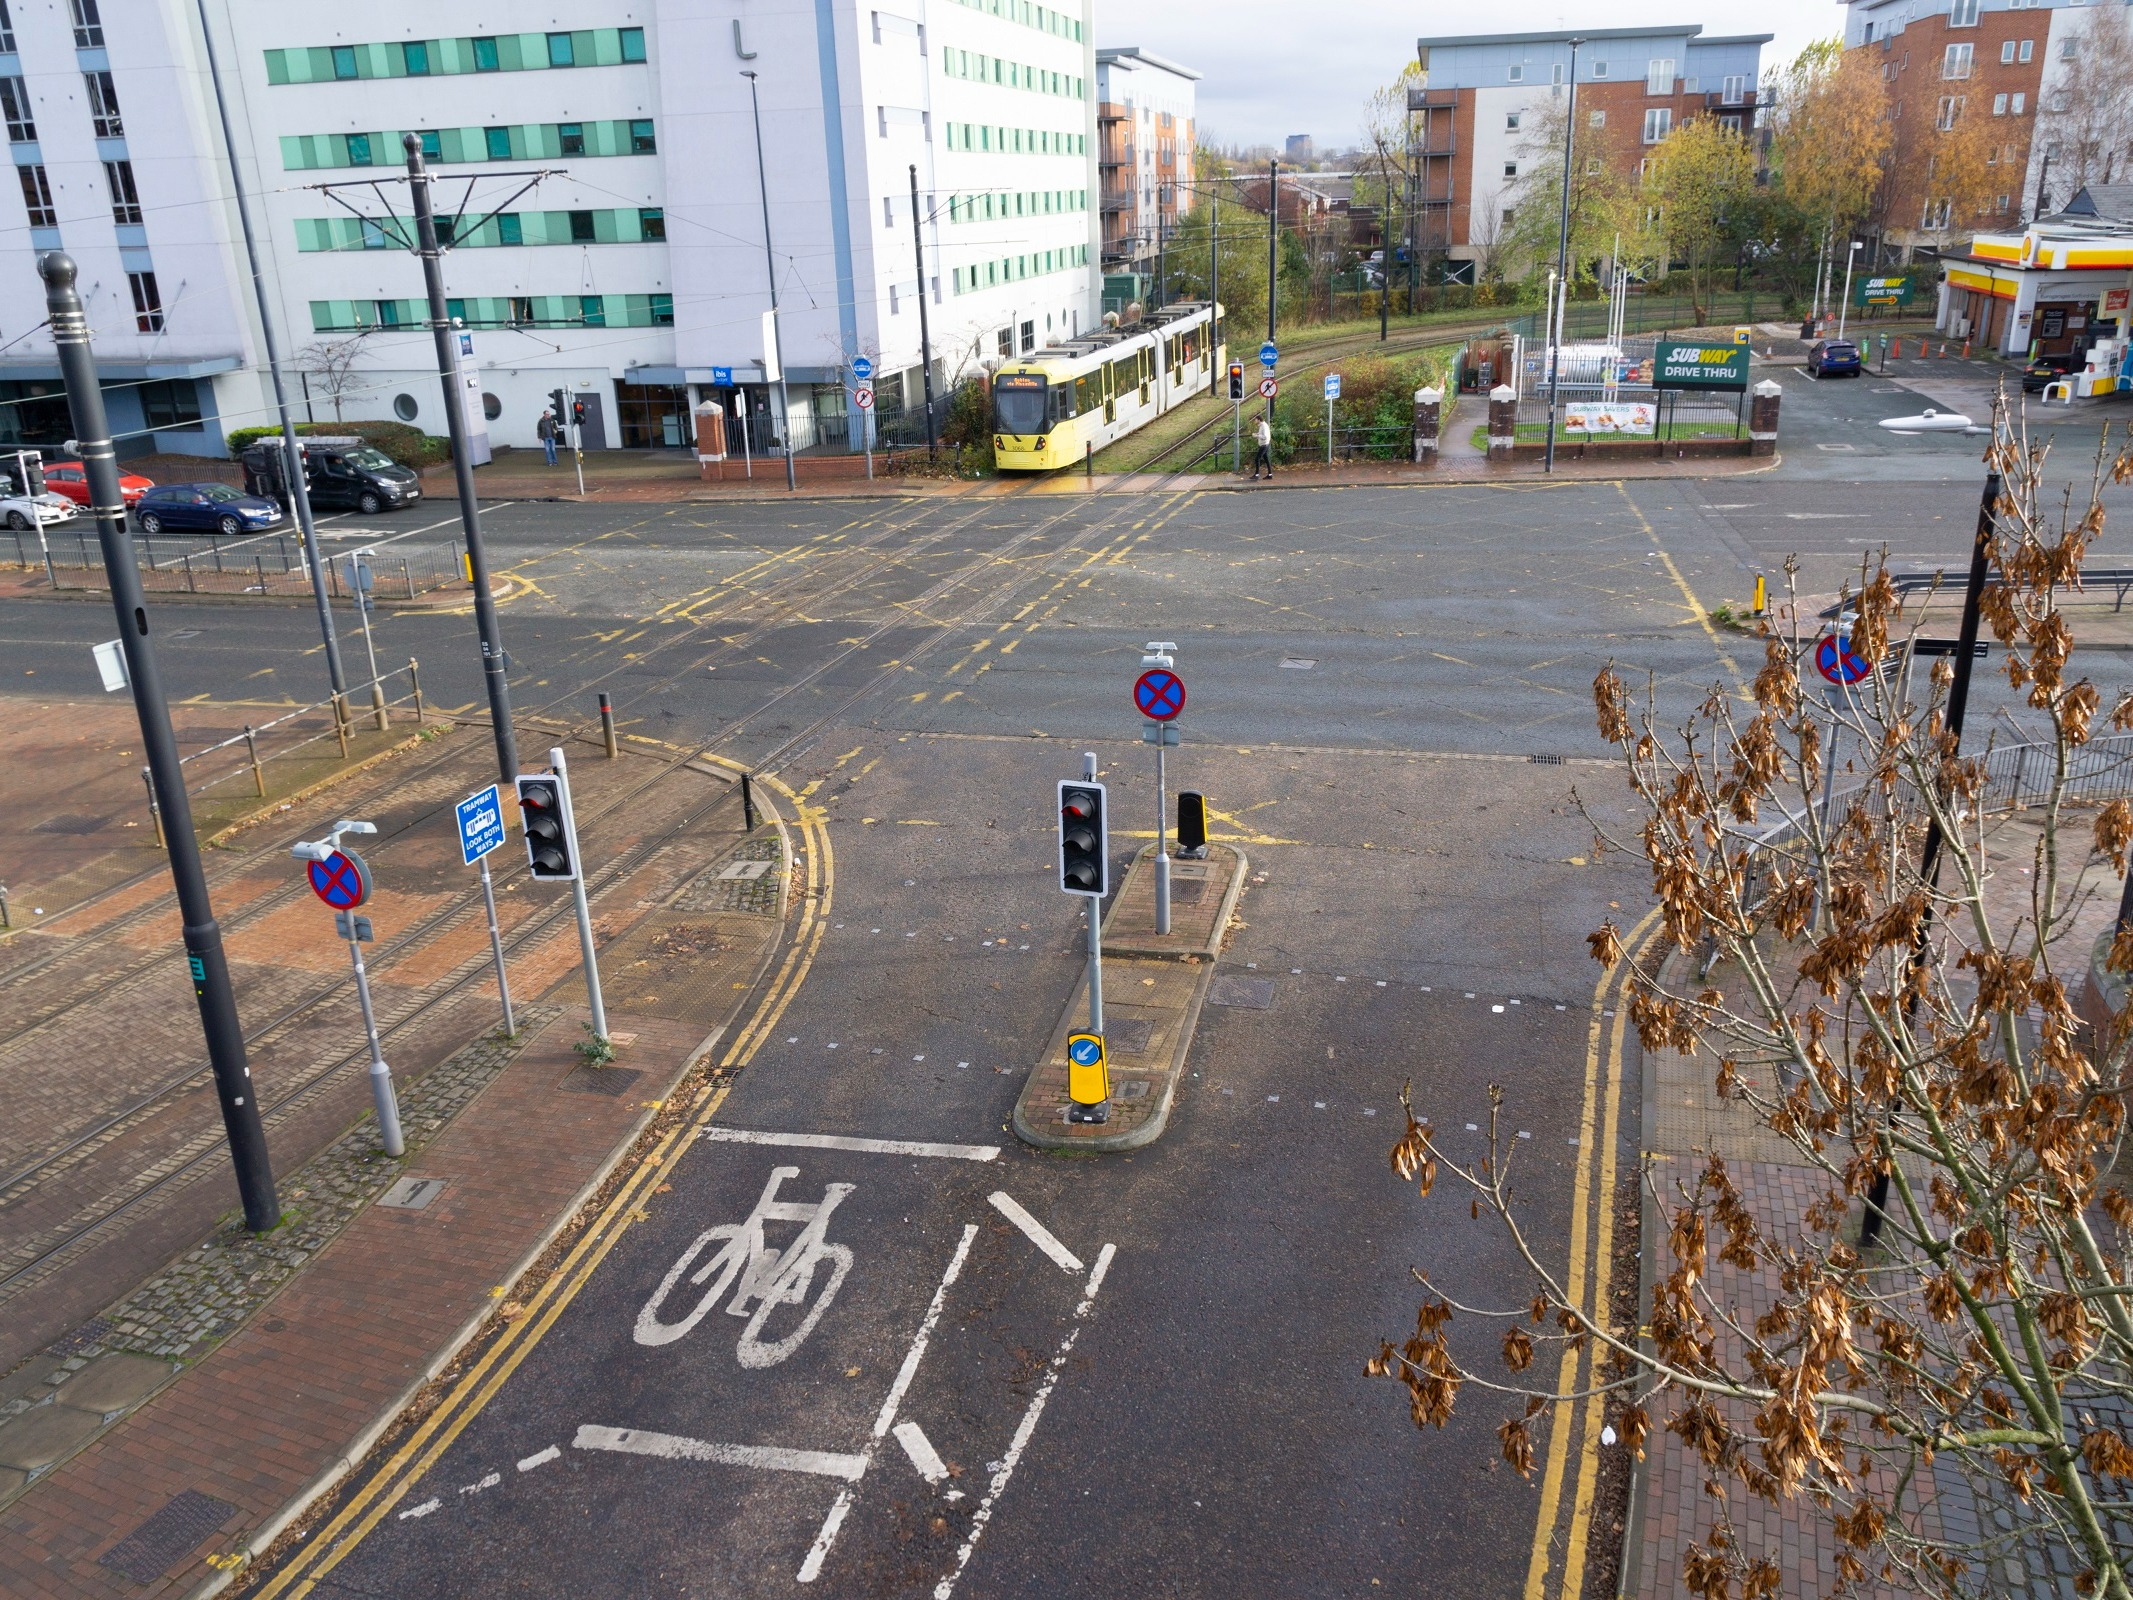 An image of the junction at Merchants Quay on Trafford road